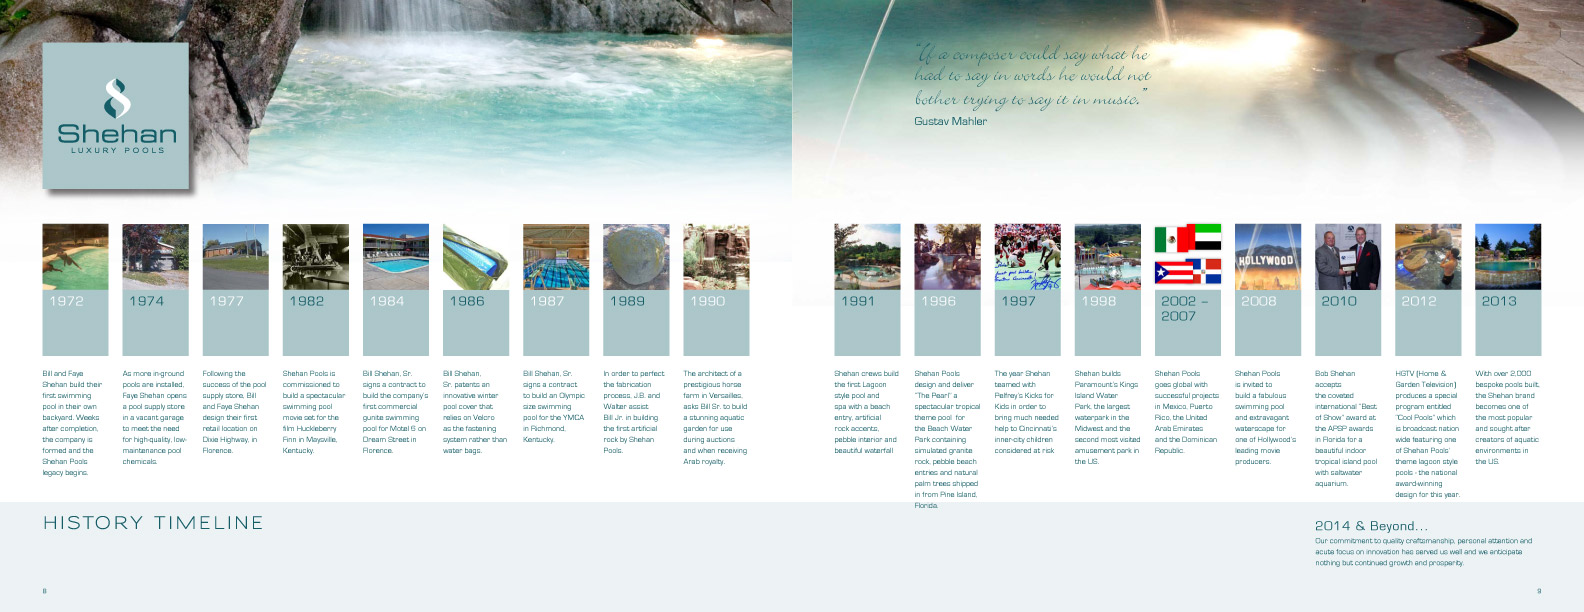 Shehan-Pools-Brochure-5